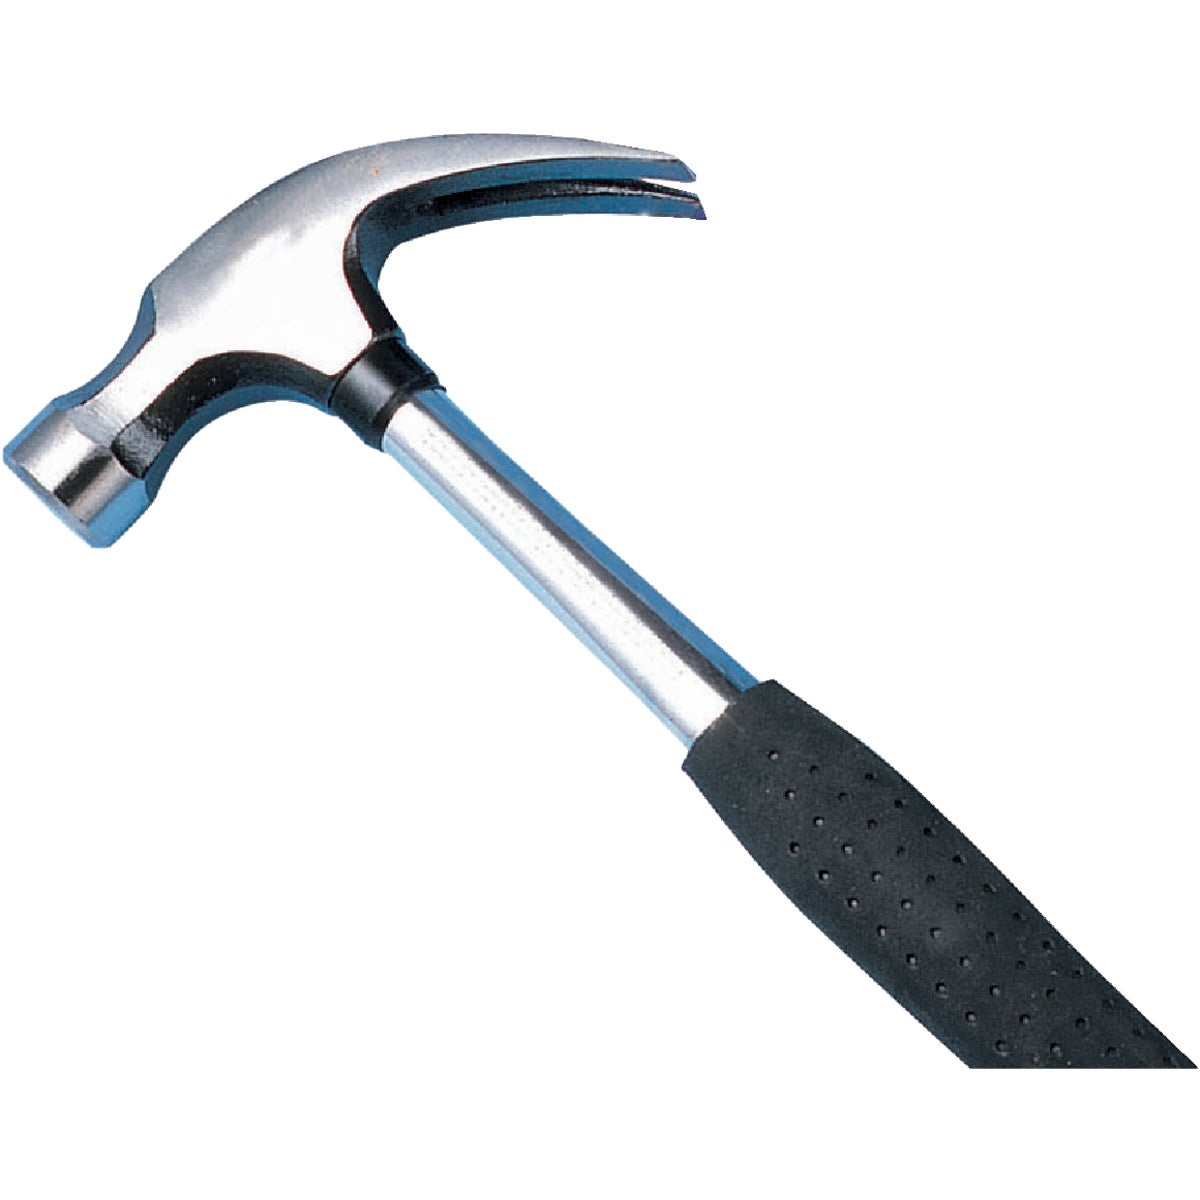 16OZ STL/HDL CLAW HAMMER - 314838 by Danaher Tool Ltd